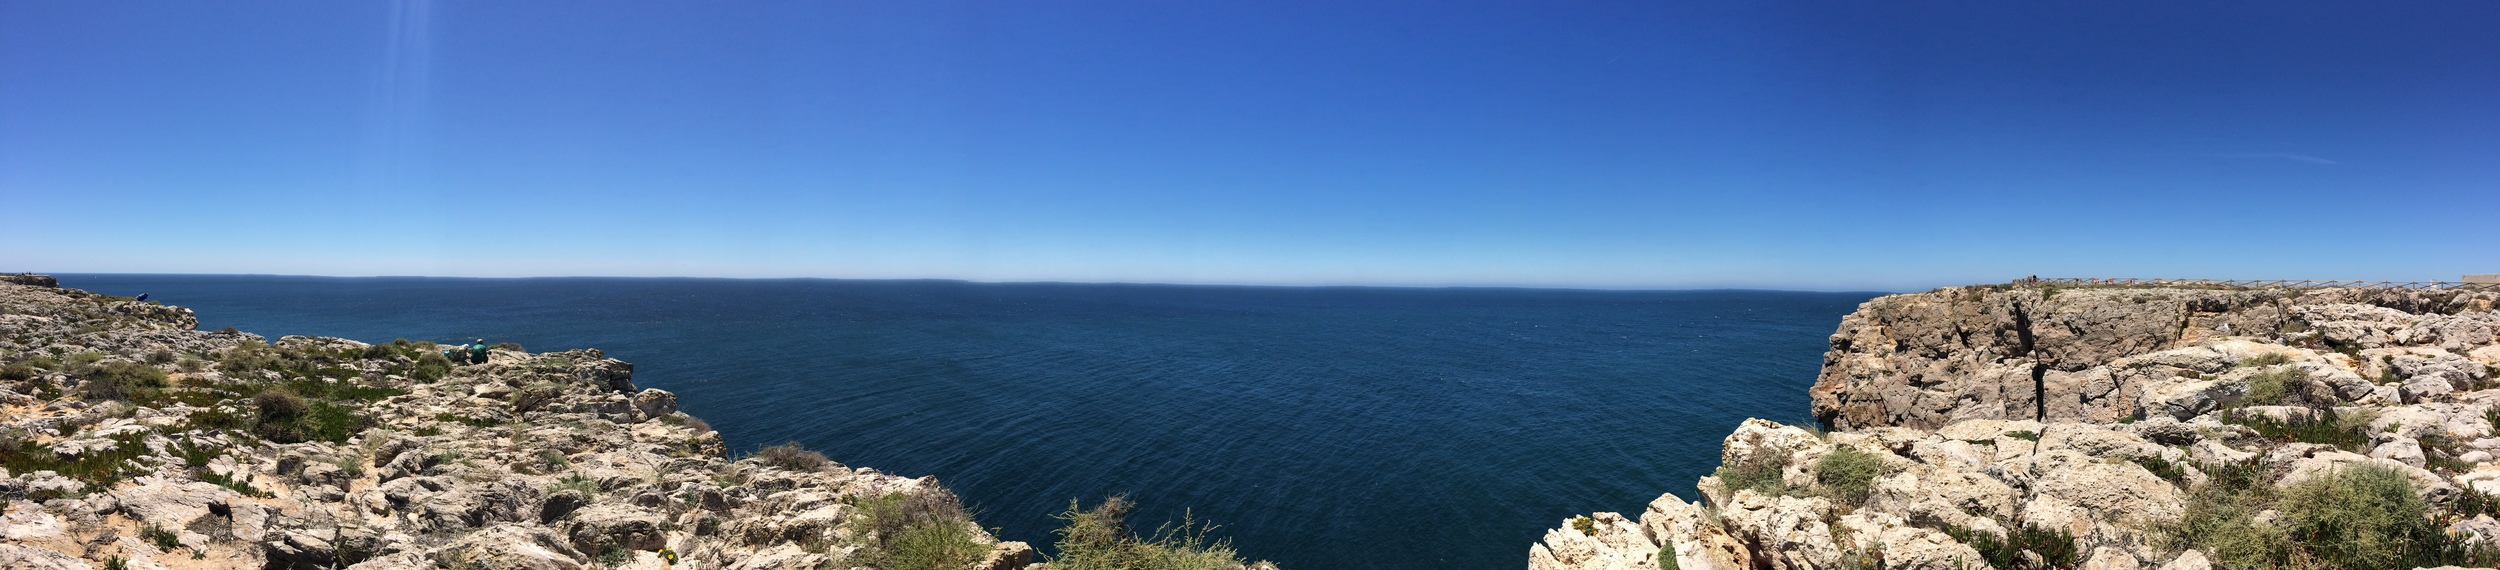 The very edge of Europe, and for many generations the edge of the world.